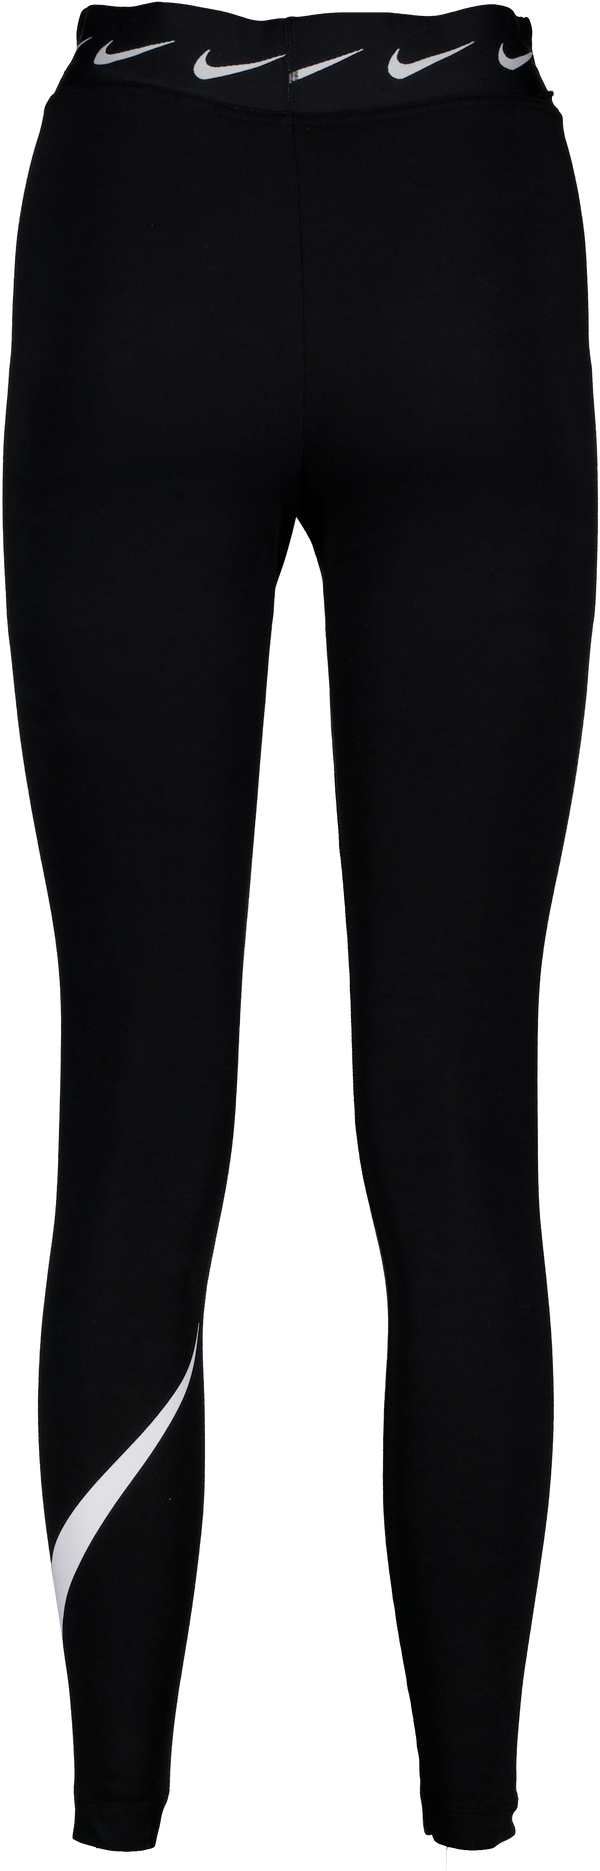 Nike Sportswear High-Waisted Leggings